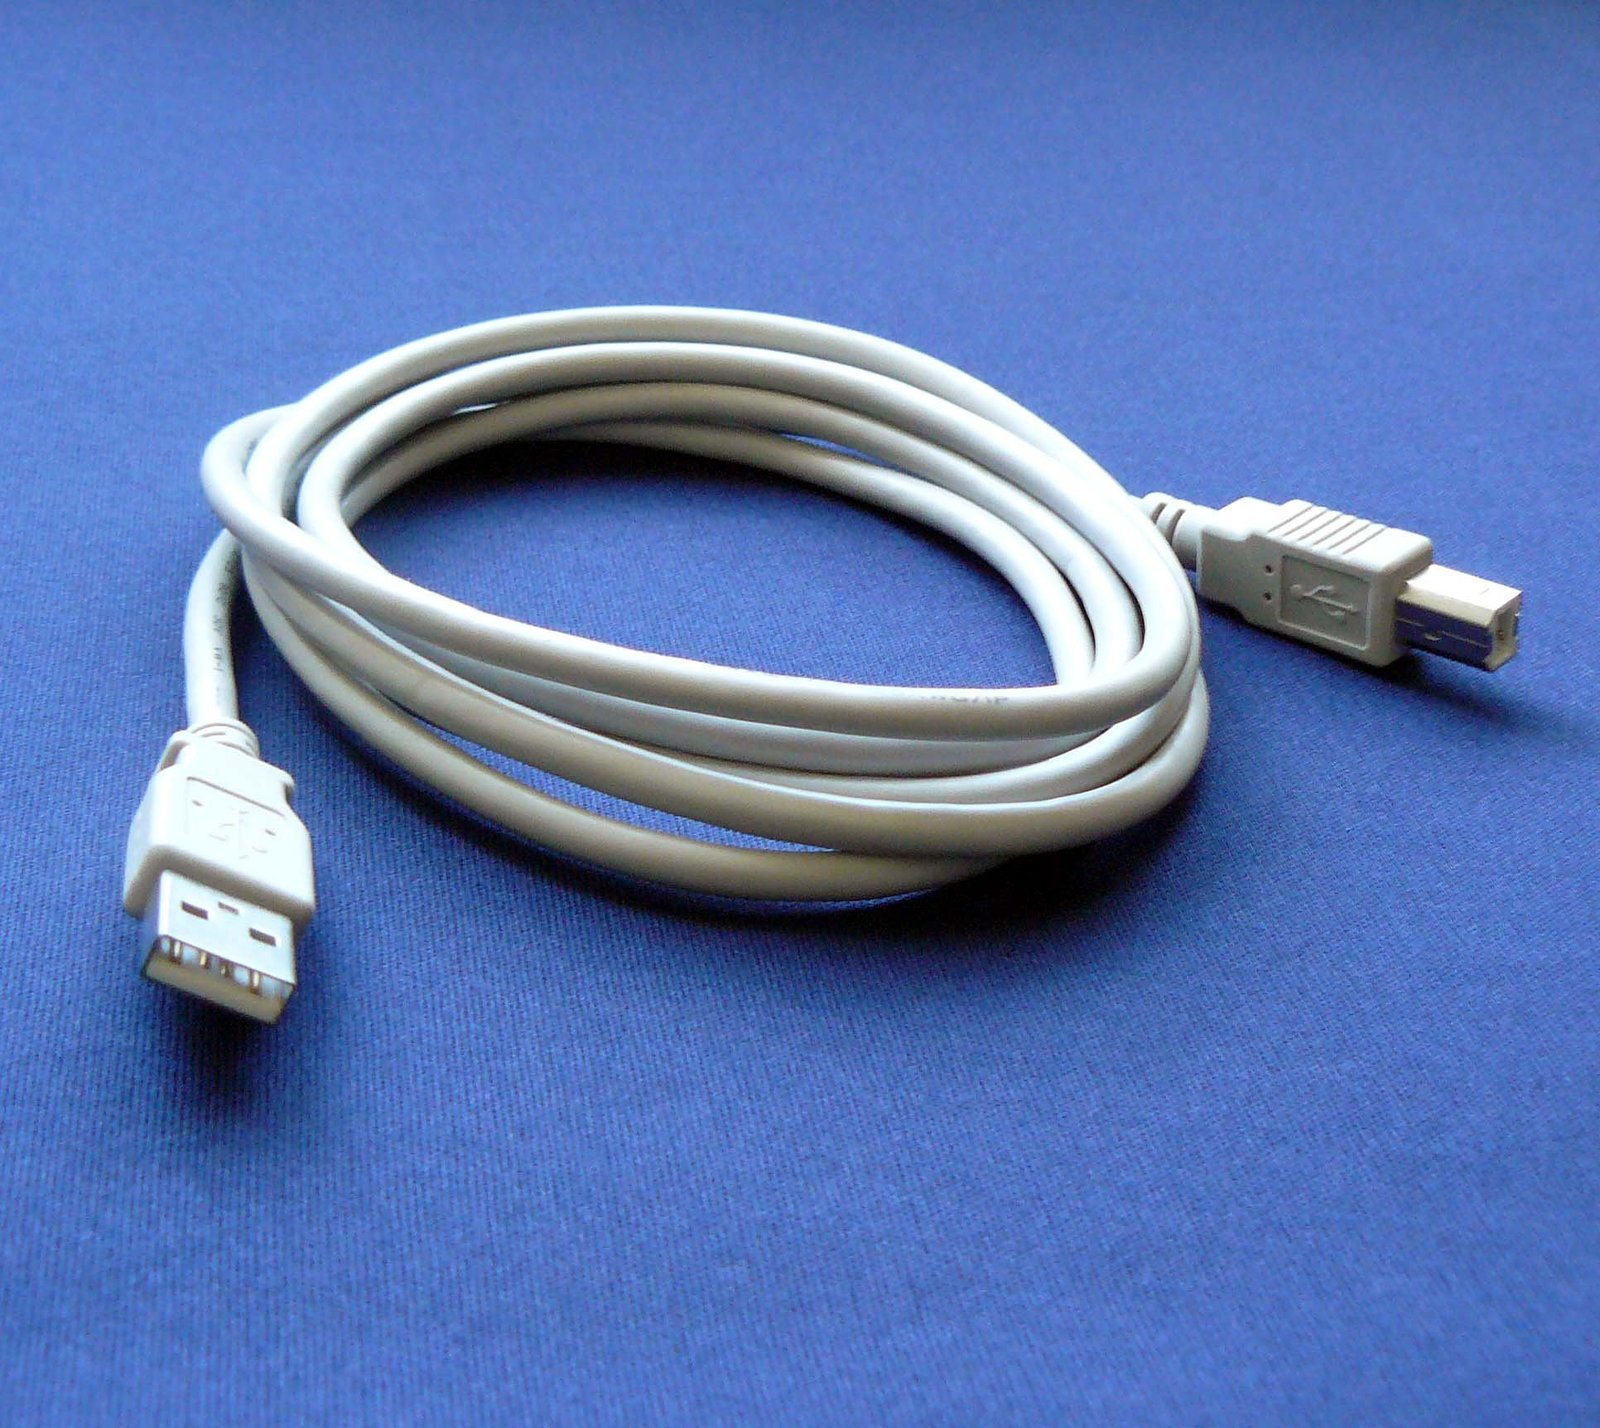 Primary image for Canon ImageClass MF8350cdn Printer Compatible USB 2.0 Cable Cord for PC, Note...